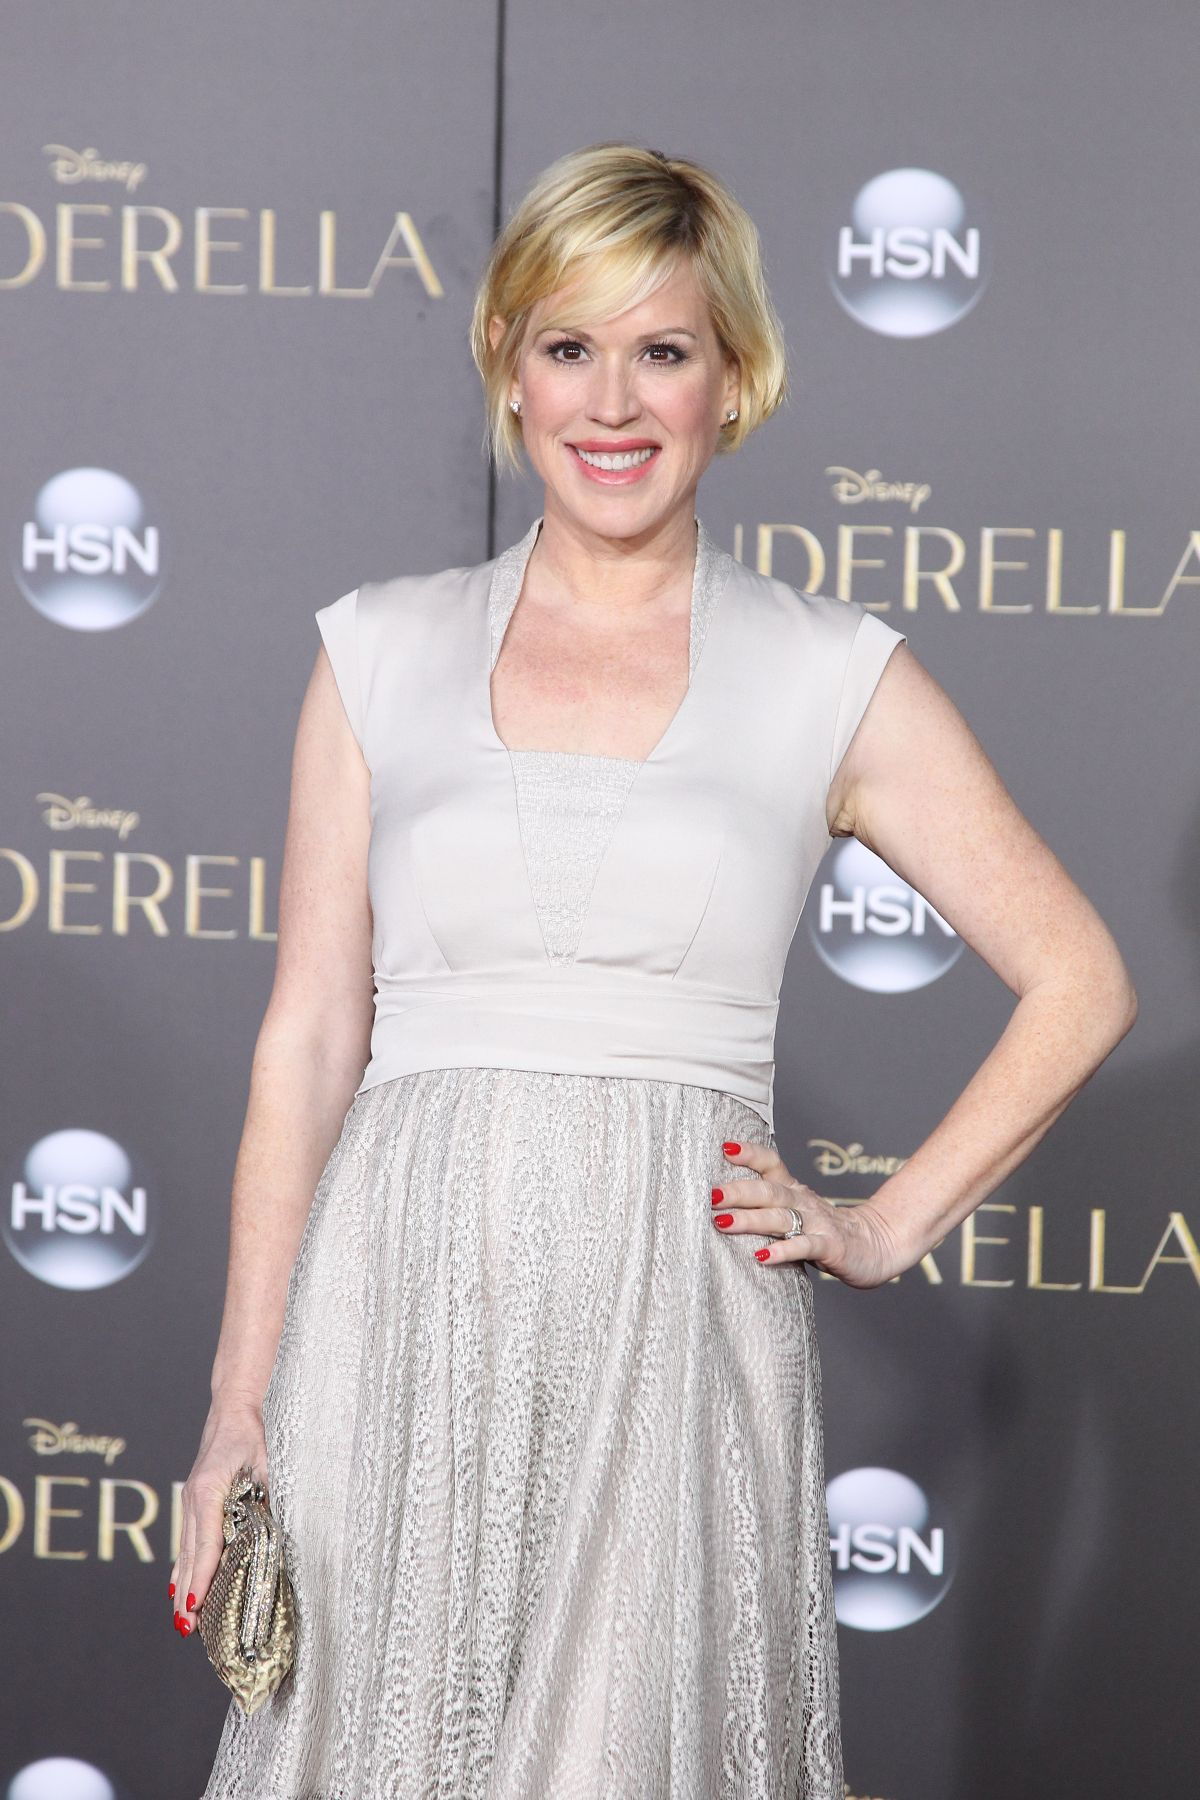 MOLLY RINGWALD at Cinderella Premiere in Hollywood